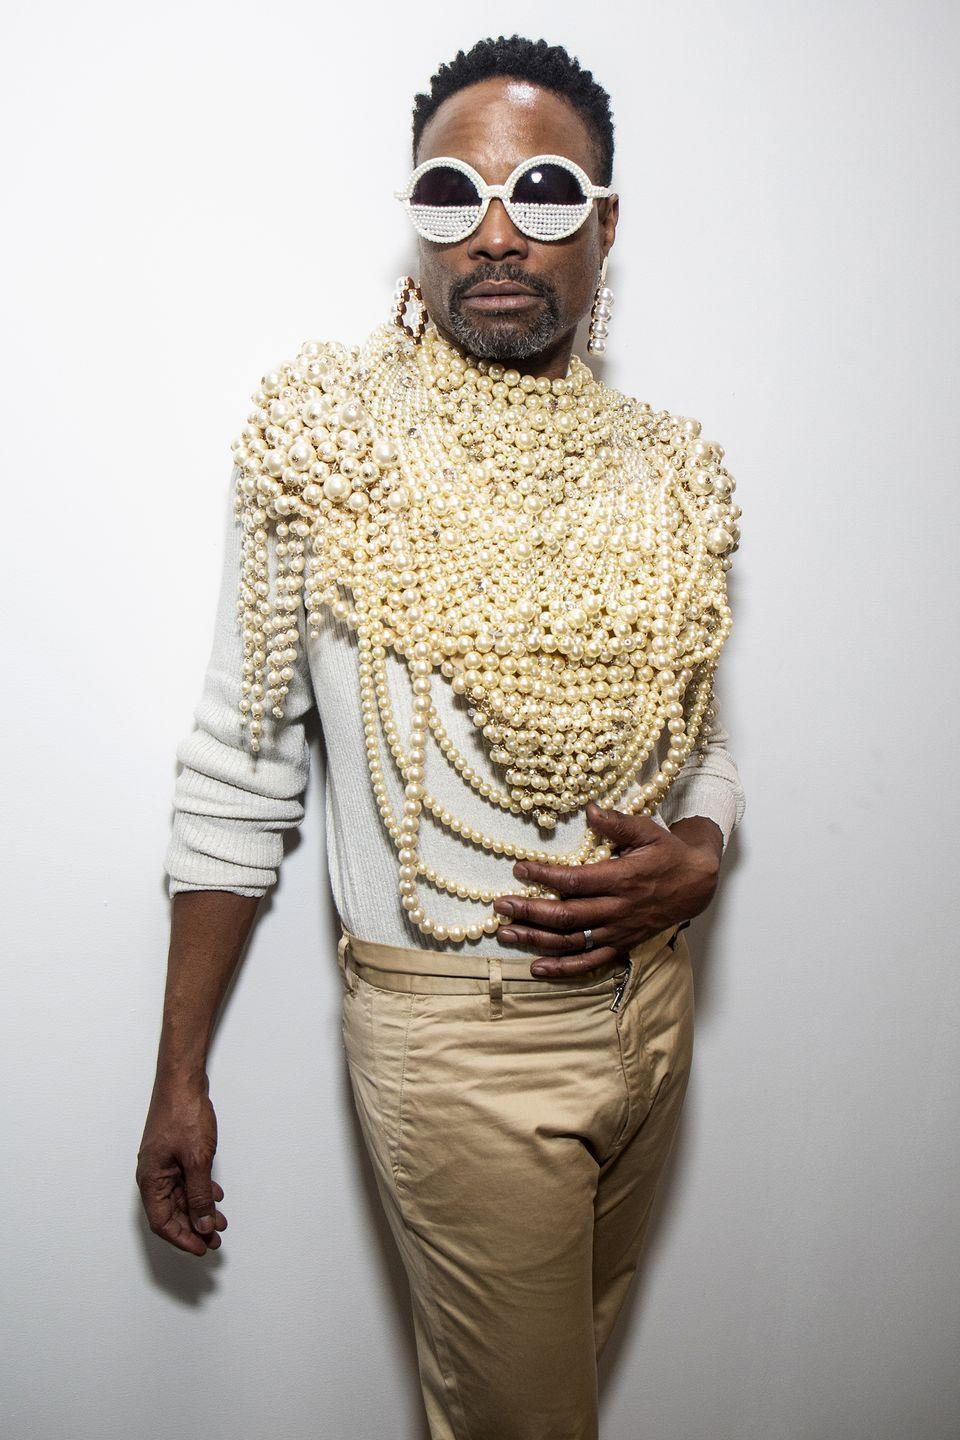 <p>At NYFW show at Spring Studios, Porter wore the brand's pearl necklace, taking his gold-coloured trousers, white long-sleeved jumper and white pearl-encrusted sunglasses ensemble to the next level. </p>